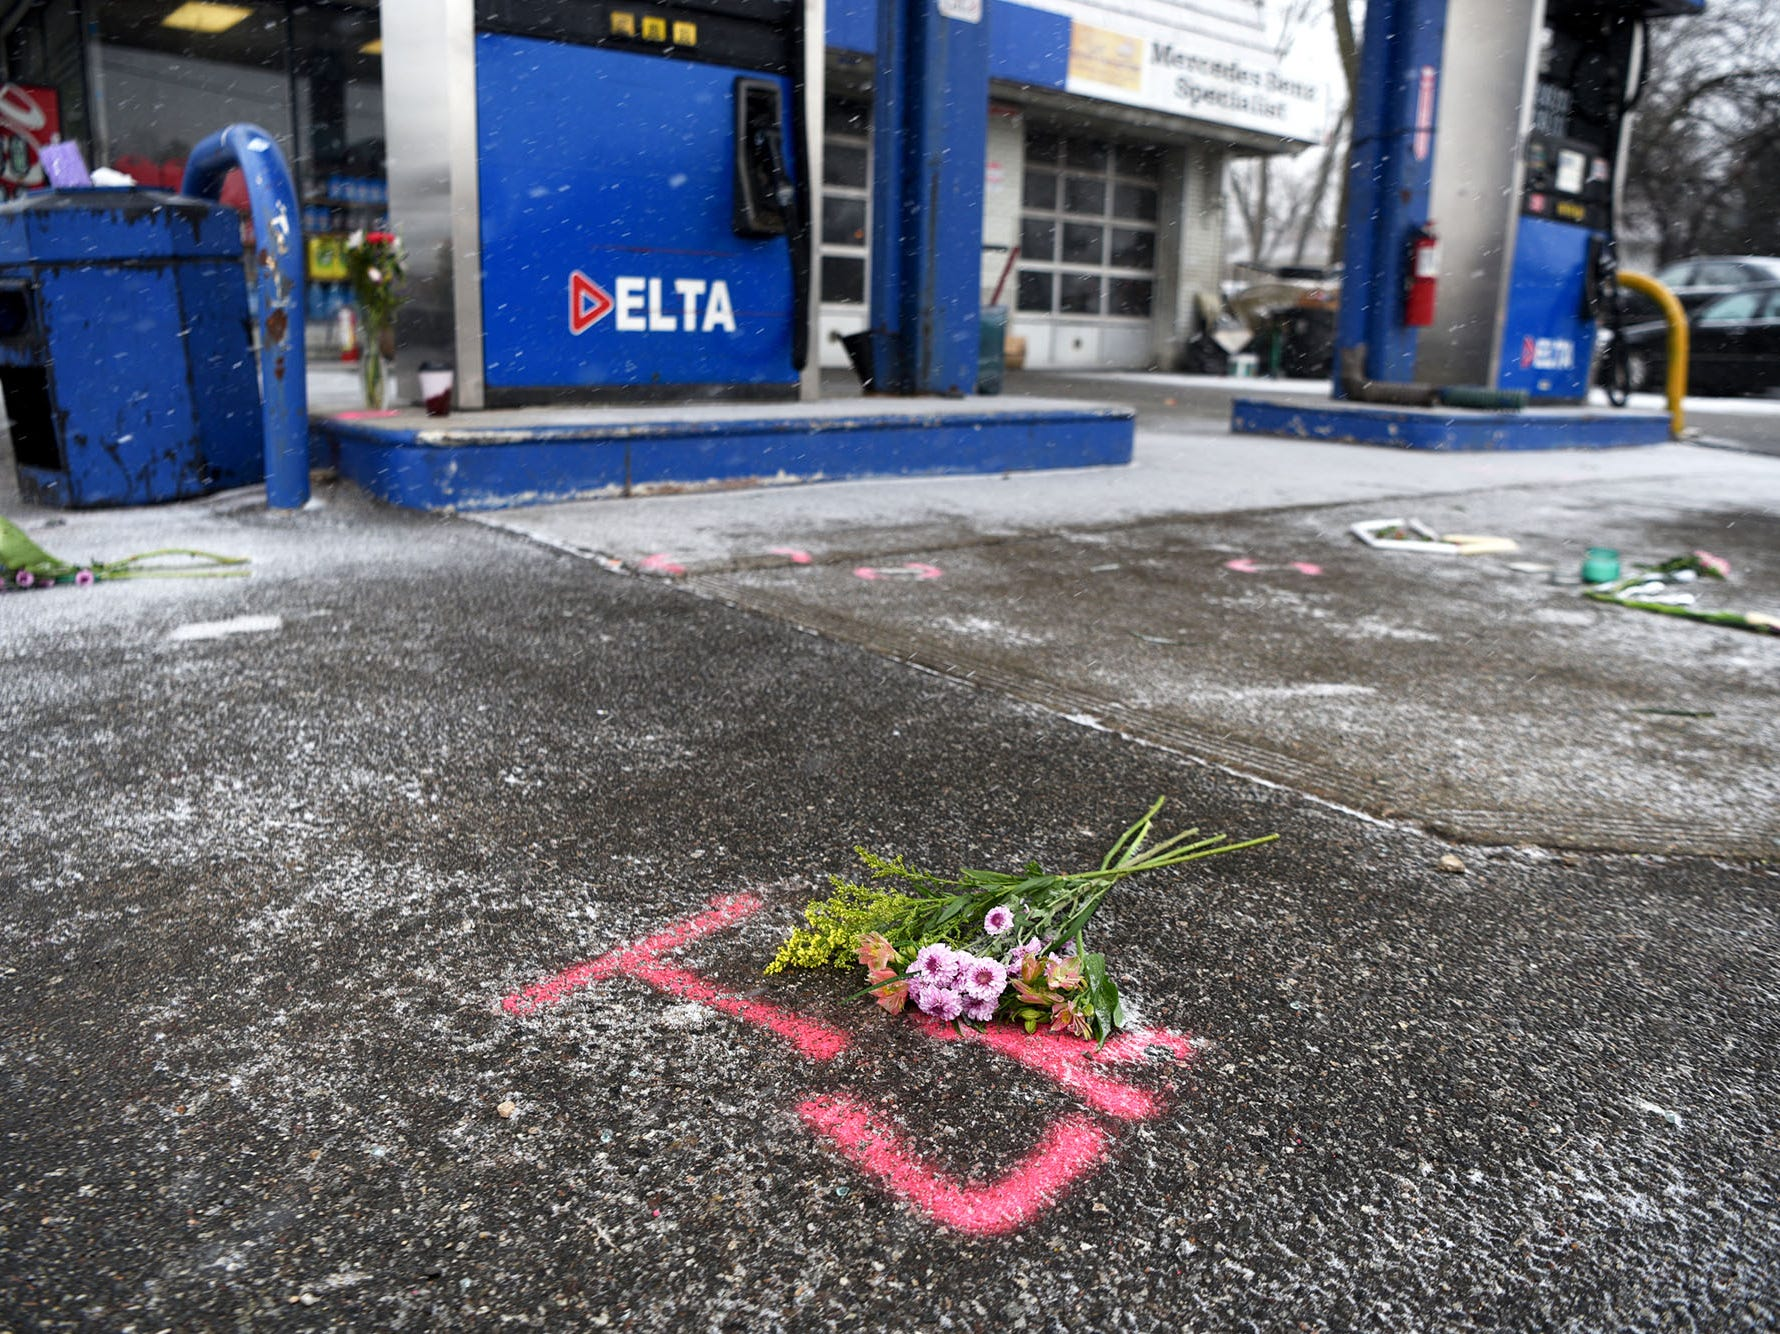 Mourners brought flowers setting up a makeshift memorial at the Delta Station on Rt. 23 in Wayne on Wednesday, February 20, 2019. Jon and Luke Warbeck and Lovedeep Fatra died when a car crashed into the Delta station on Tuesday.